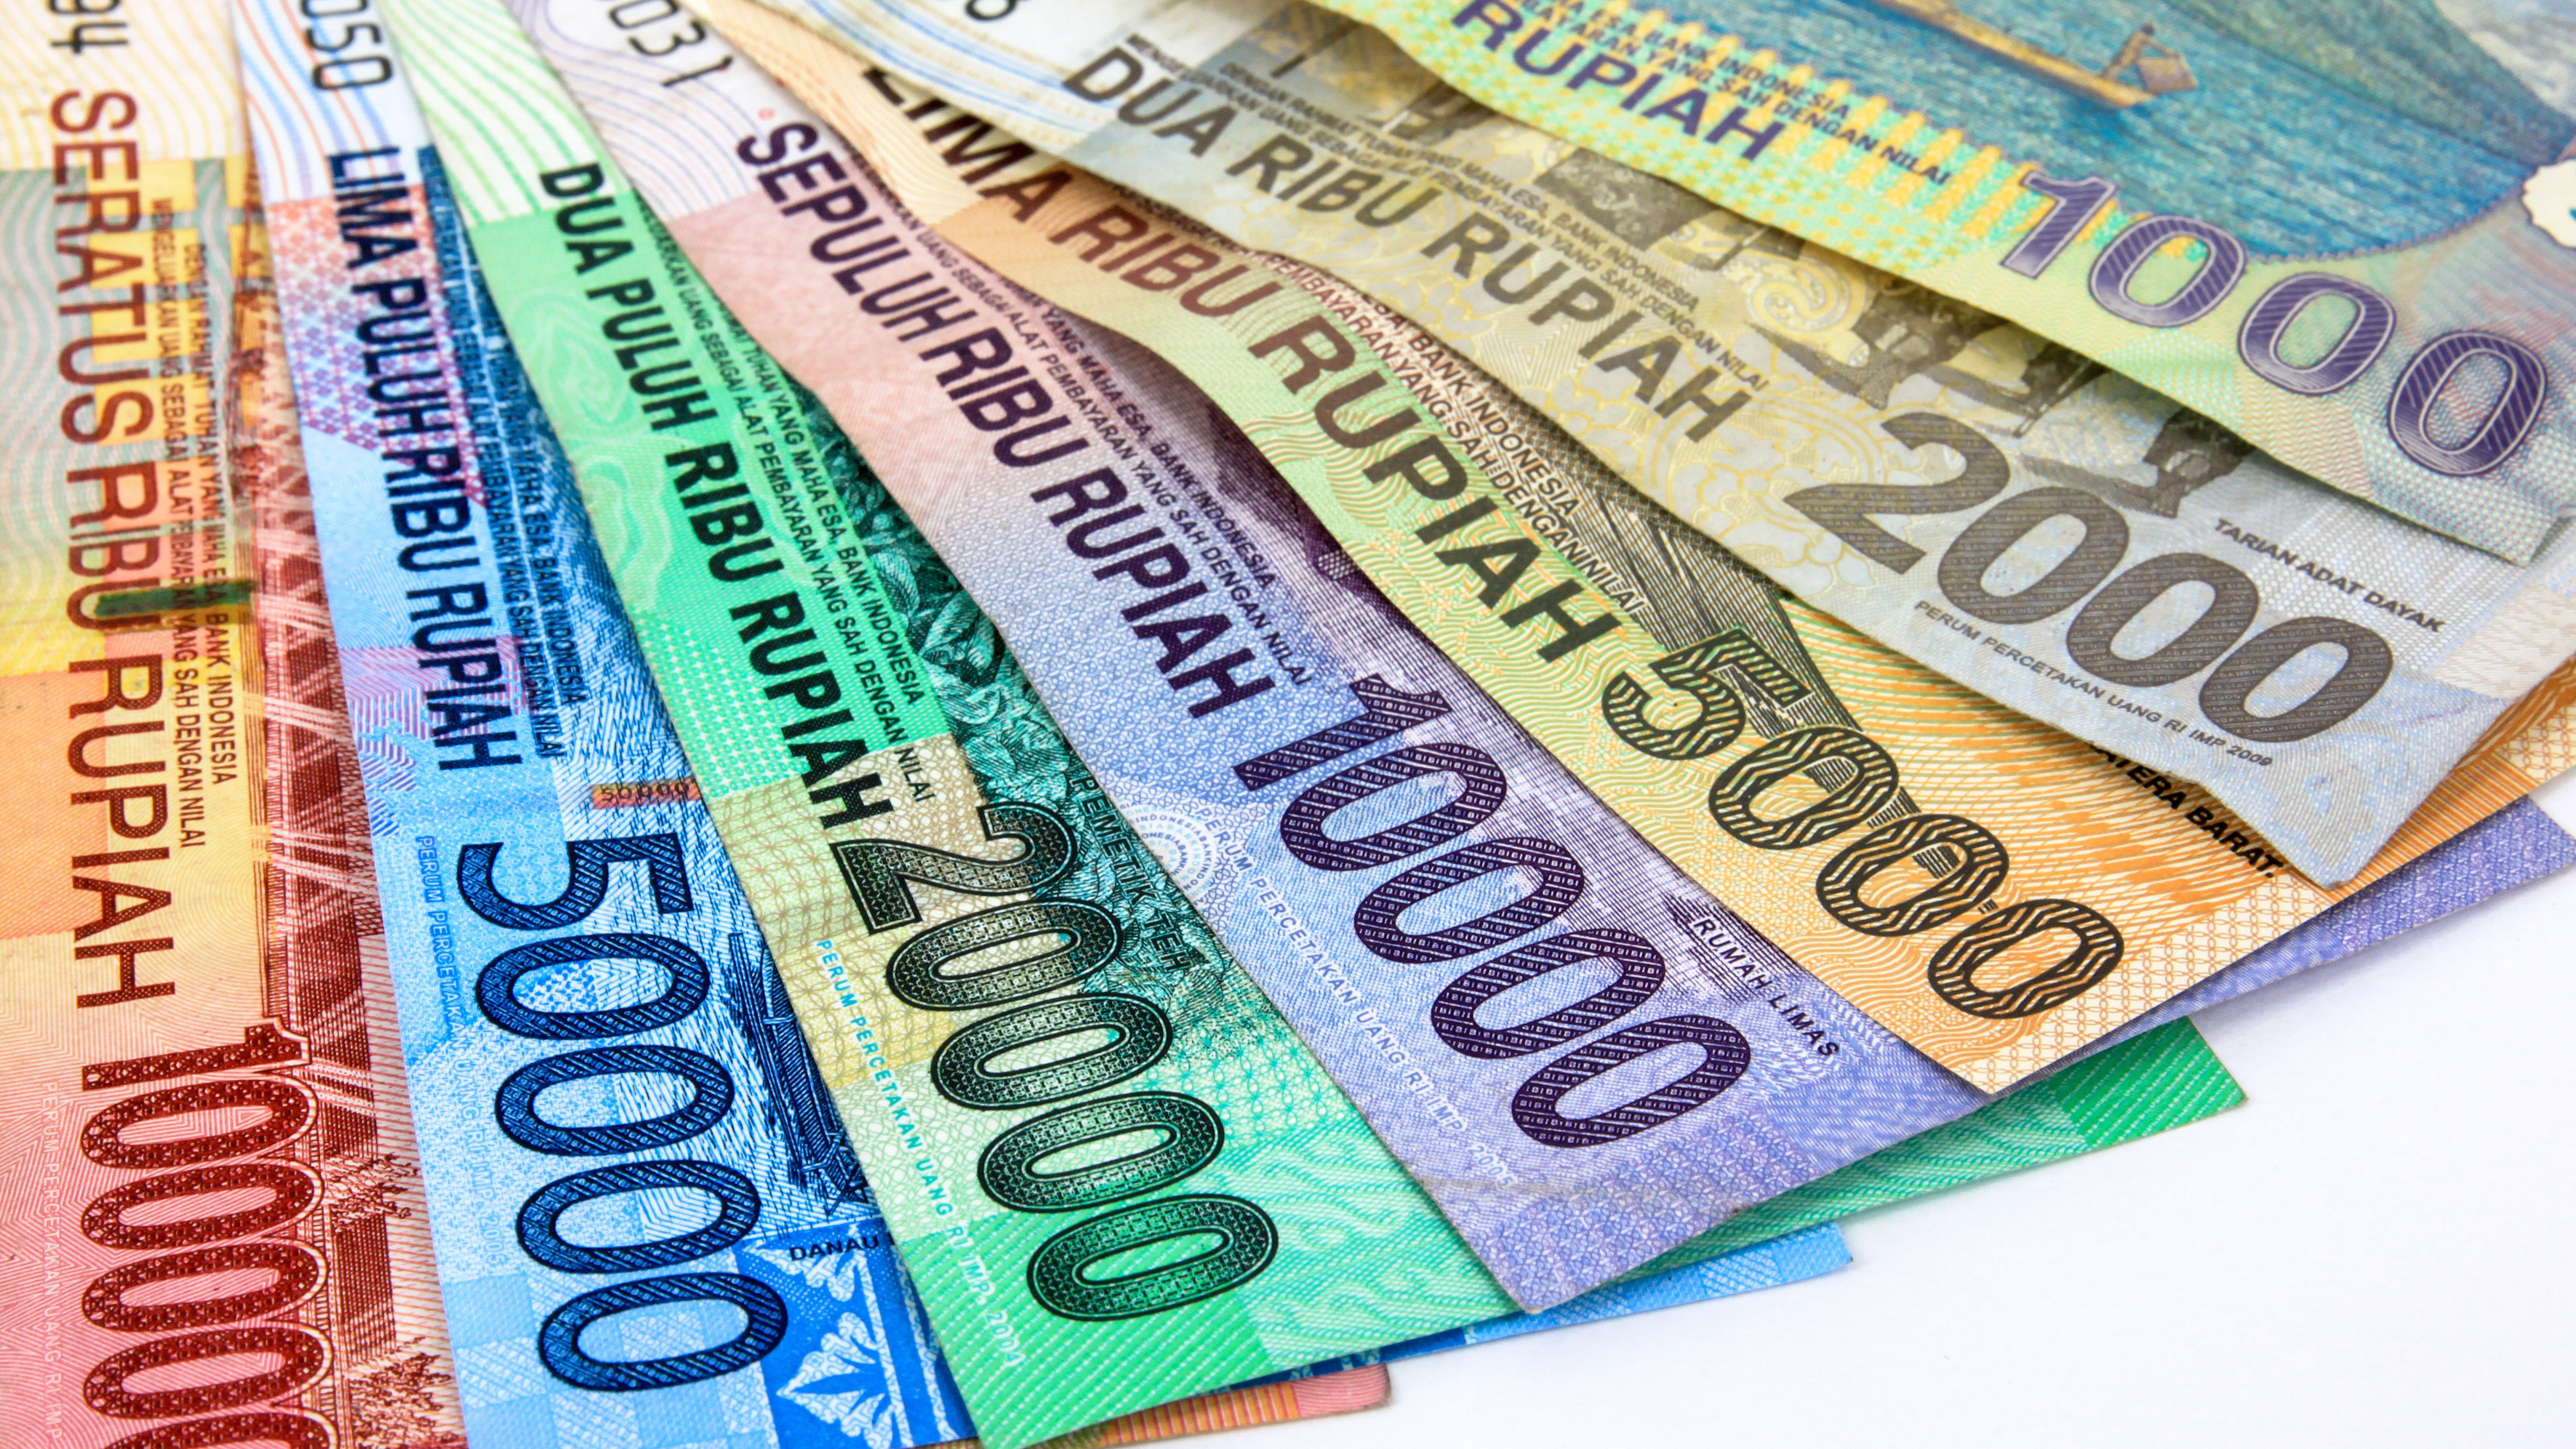 The Currency In Bali